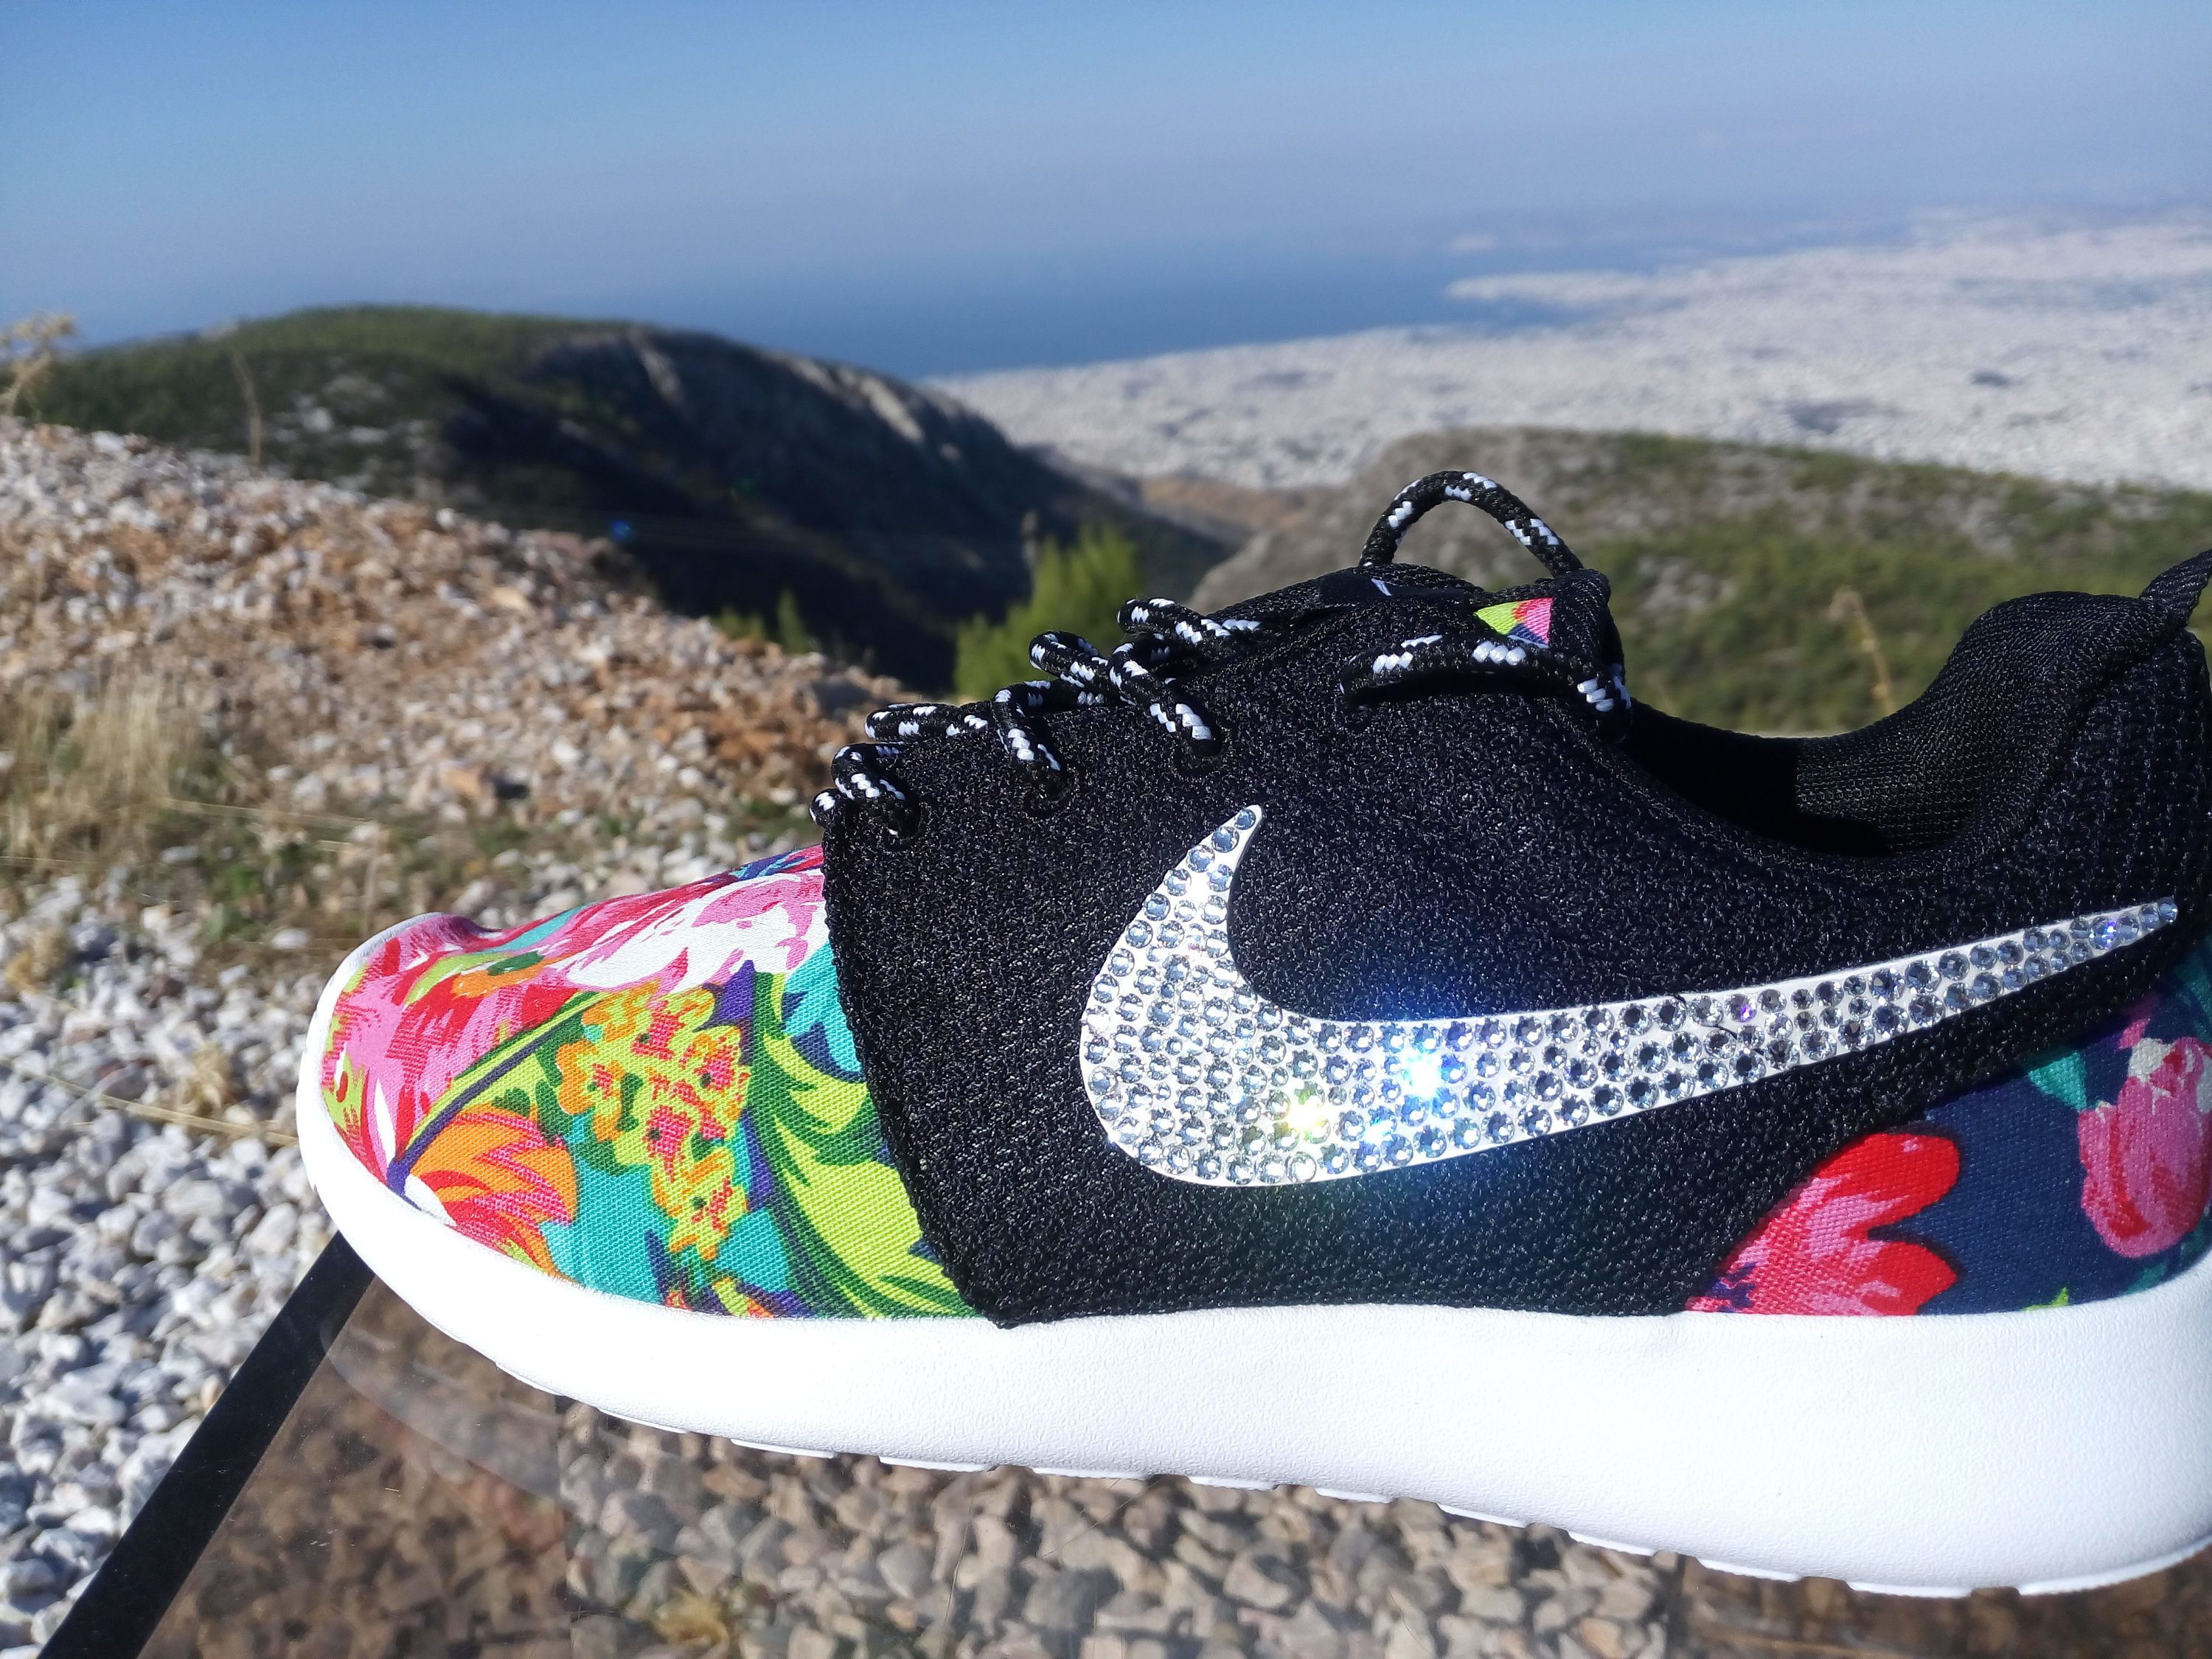 custom womens nike roshe run floral athletic shoes dark blue color  customized with fabric floral blinged